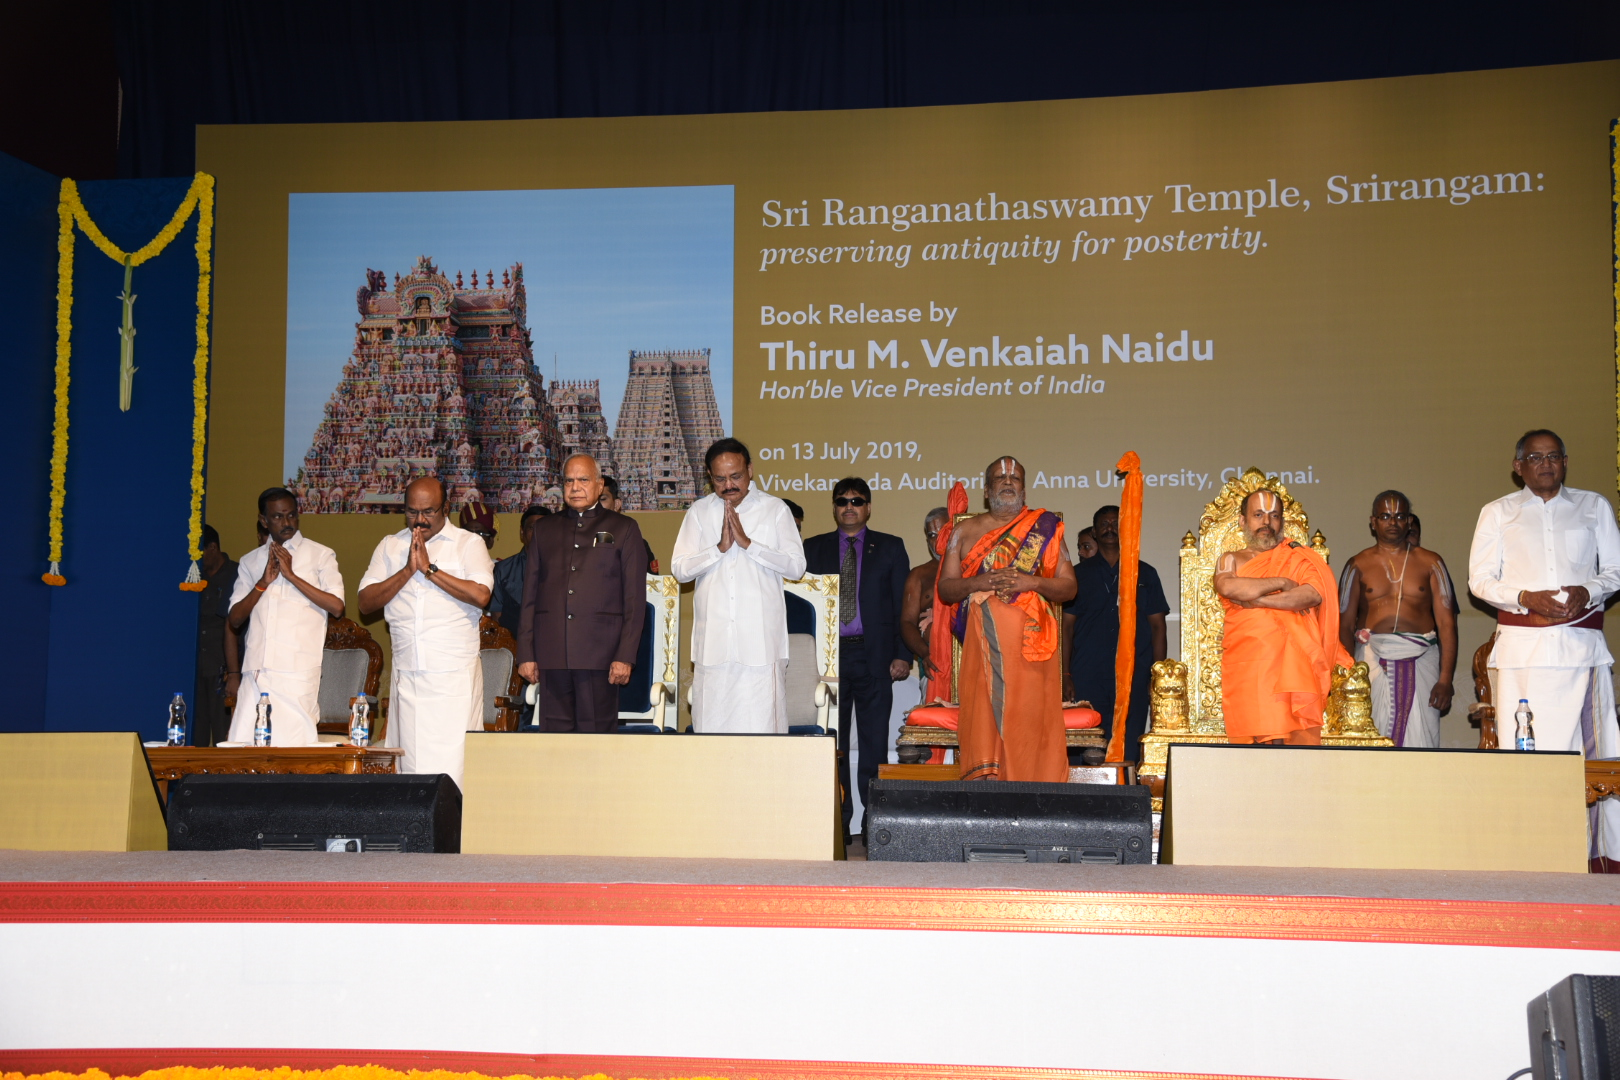 The Vice President Shri. M Venkaiah Naidu, at the release of the coffee table book 'Sri Ranganathaswamy temple, Srirangam, Preserving Antiquity for Posterity', in Chennai, on 13th July 2019.